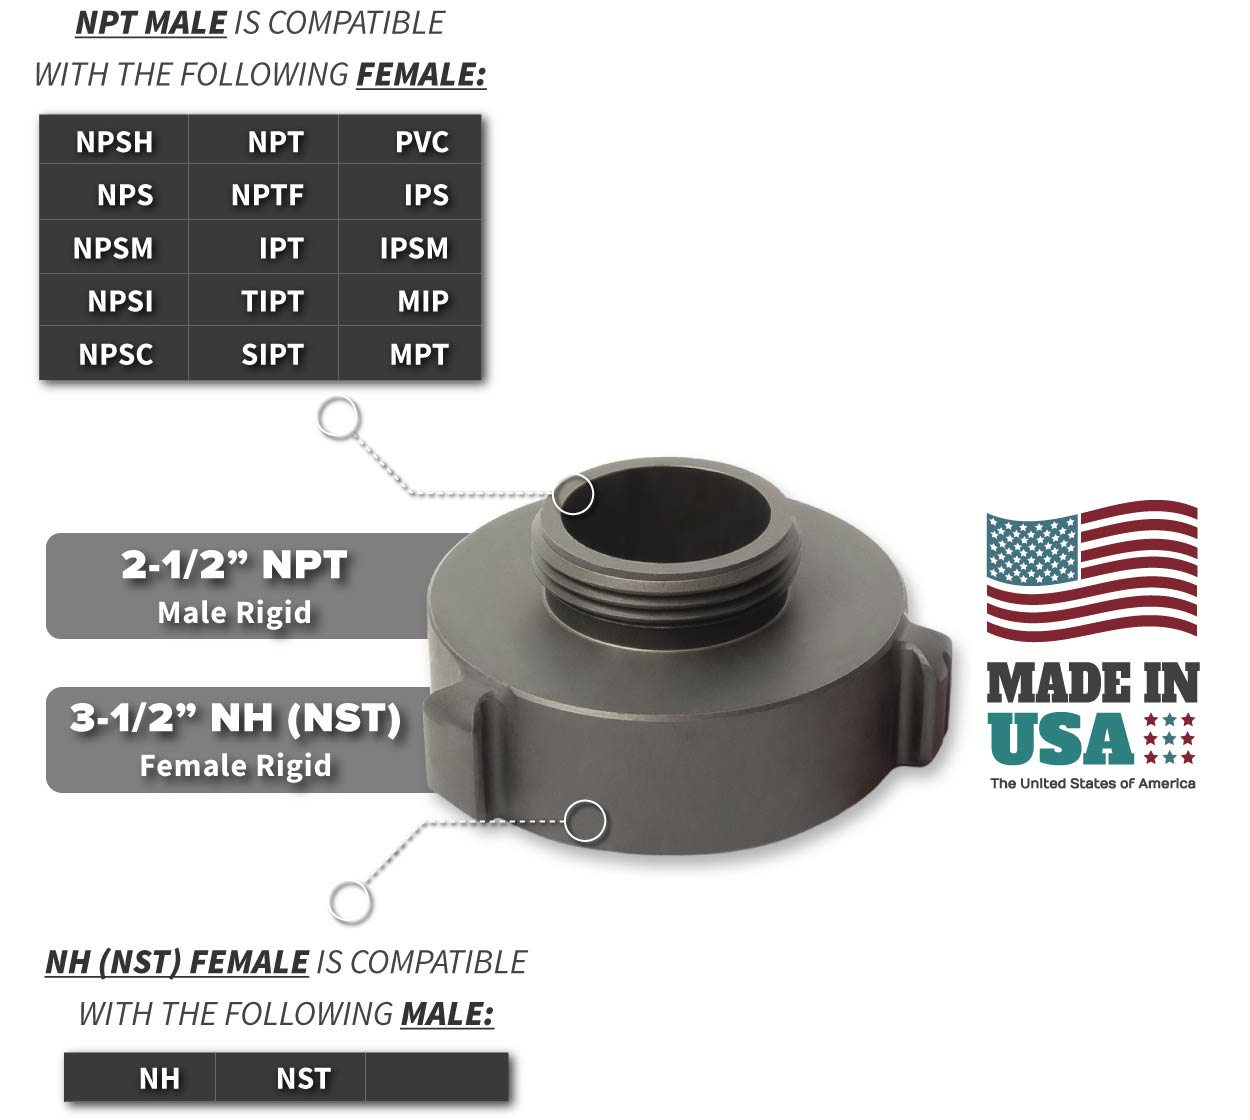 3.5 Inch NH-NST Female x 2.5 Inch NPT Male Compatibility Thread Chart